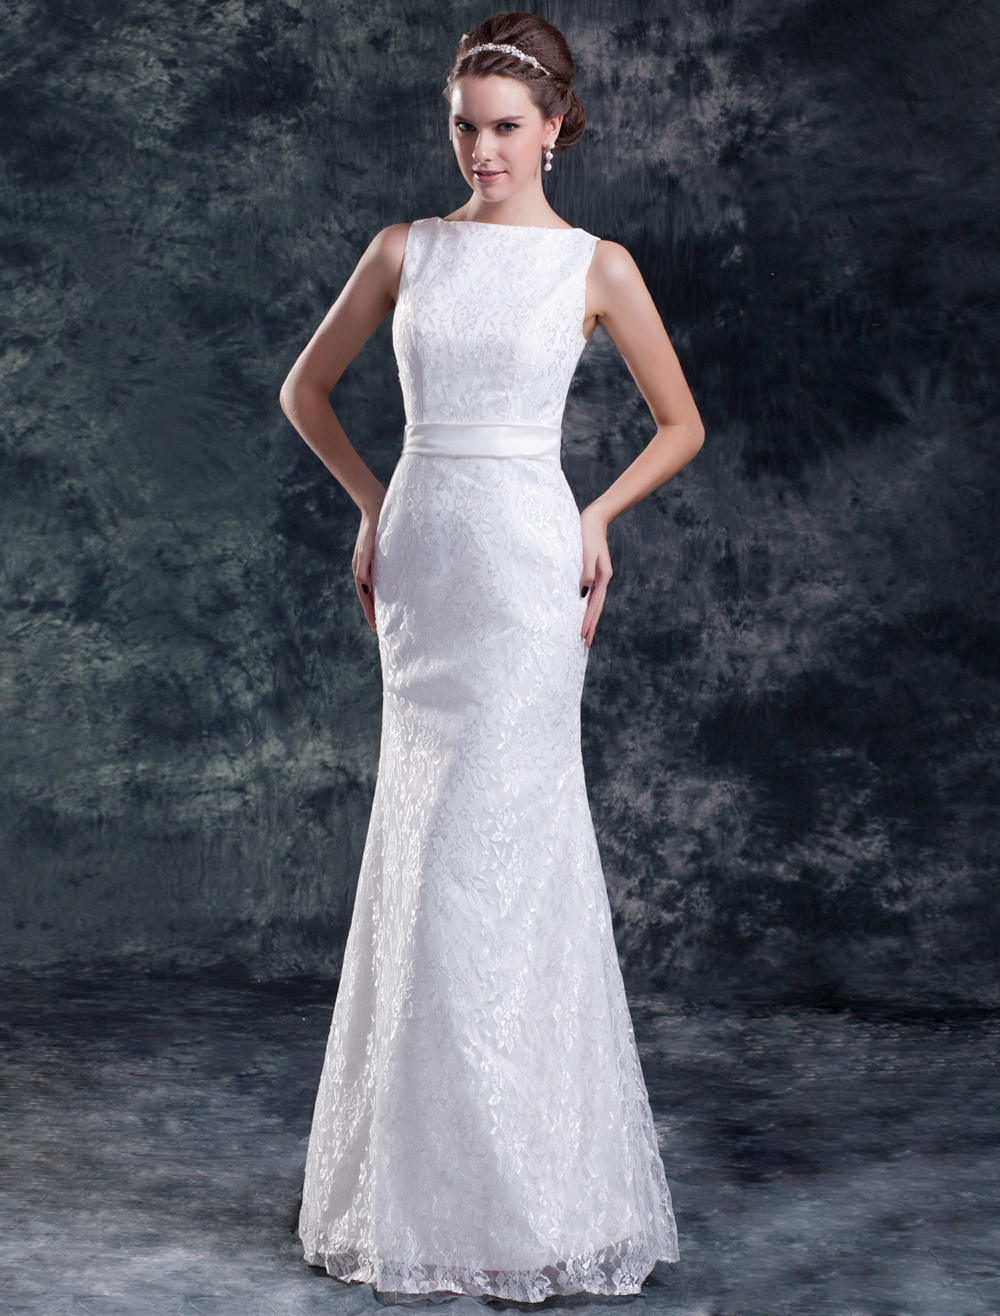 Chic White Sheath Bateau Neck Sash Lace Bride 39 S Wedding